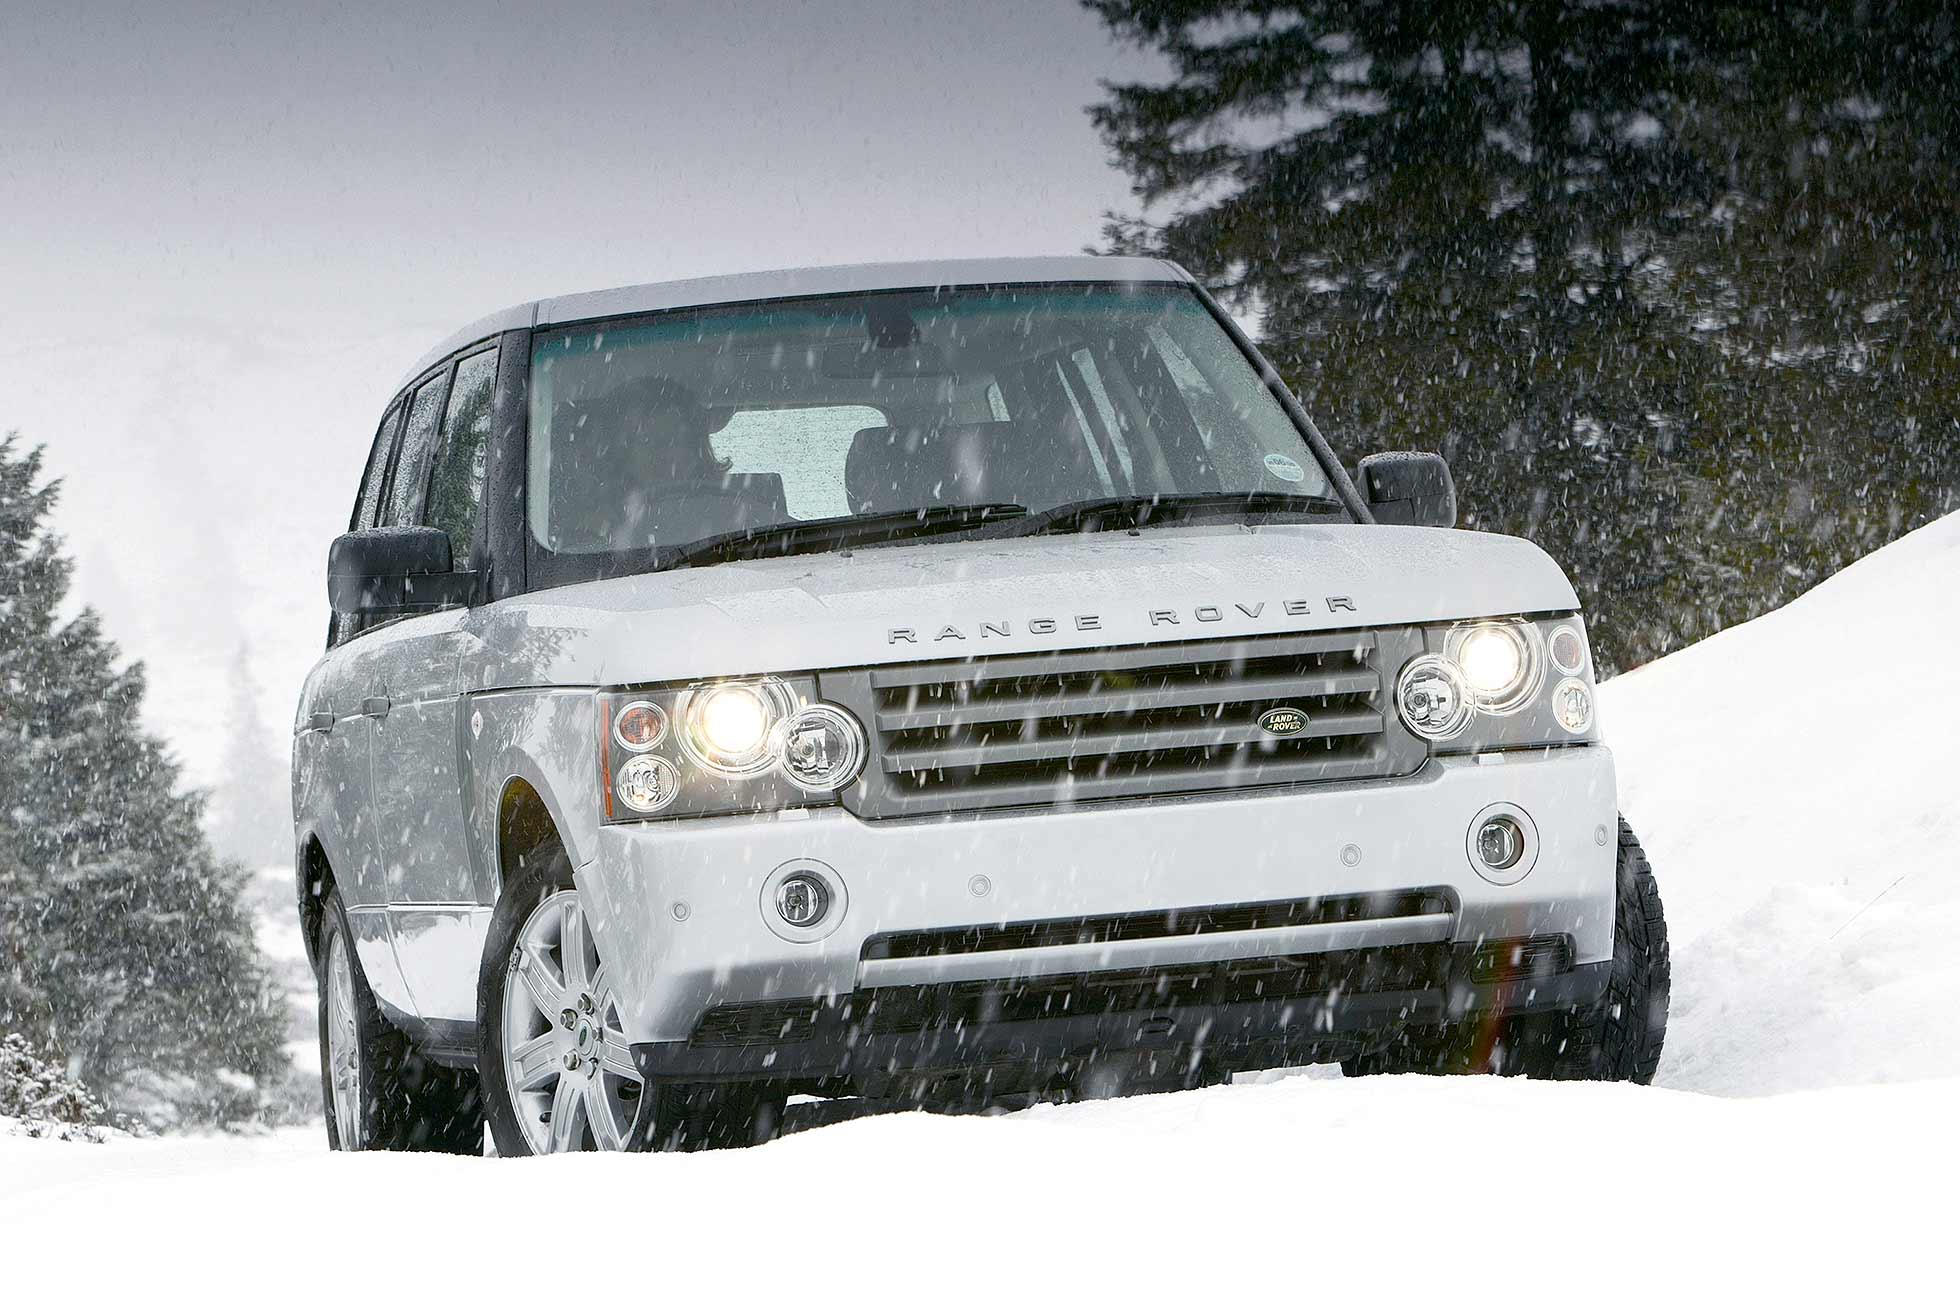 Range Rover values to rise when the snow falls